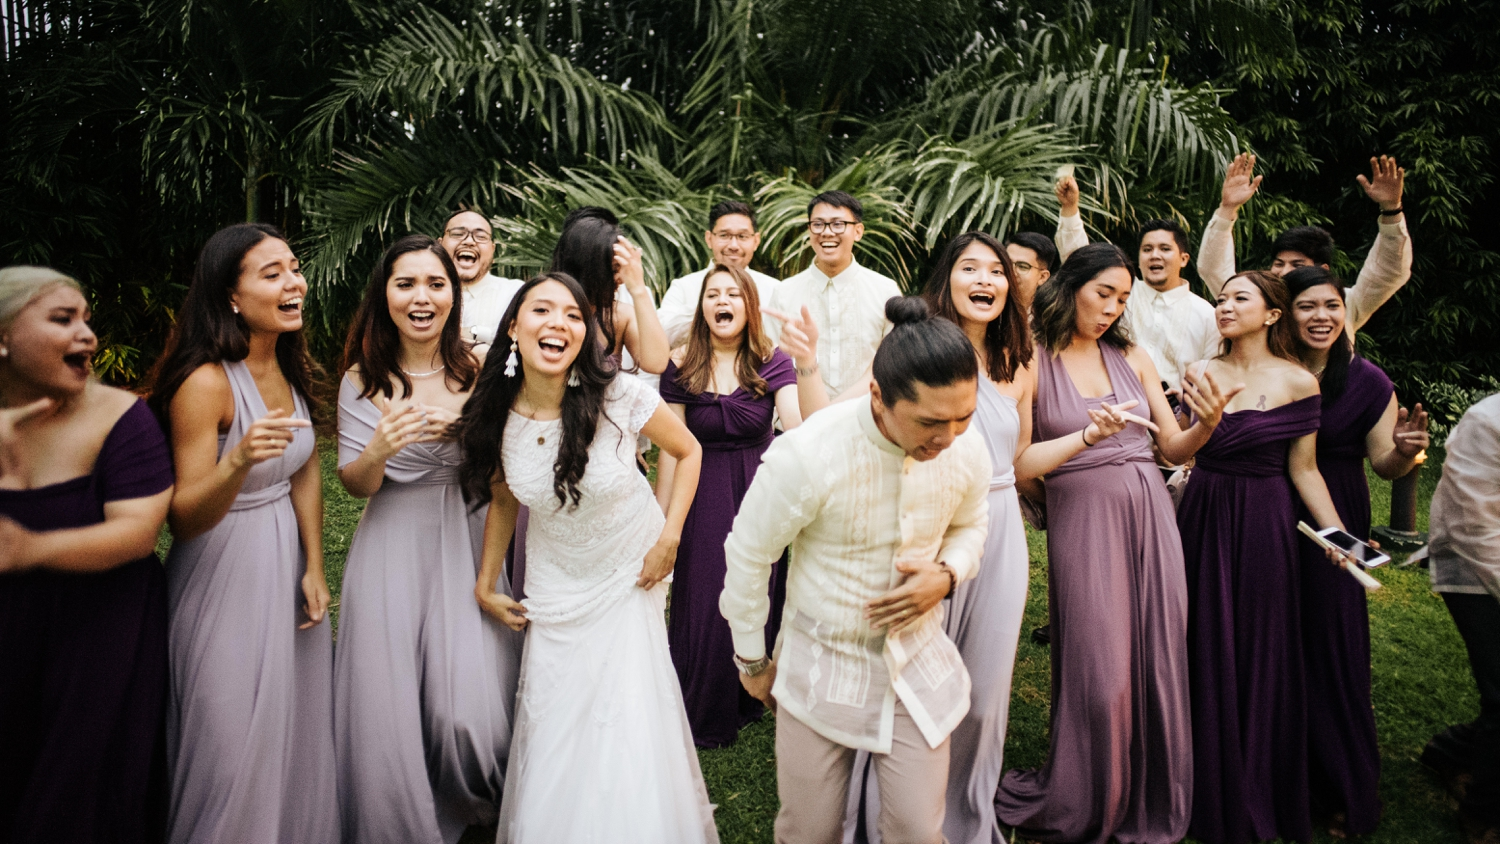 Oak St Studios - Elyse and Chuckie - Batangas, Philippines - wedding photographer